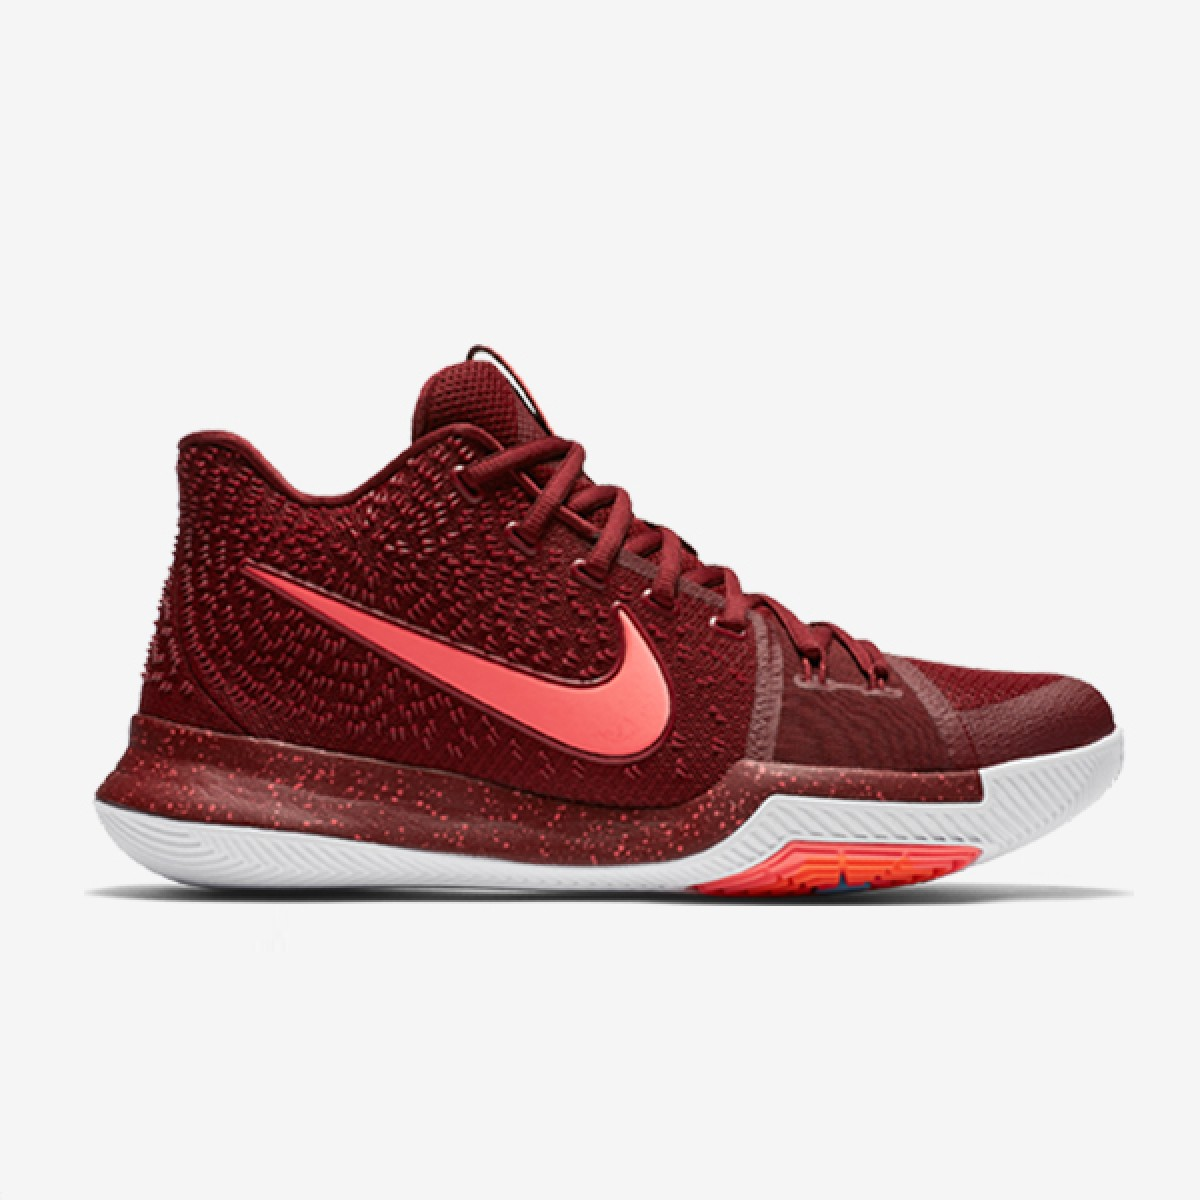 Nike Kyrie 3 GS 'Warning'